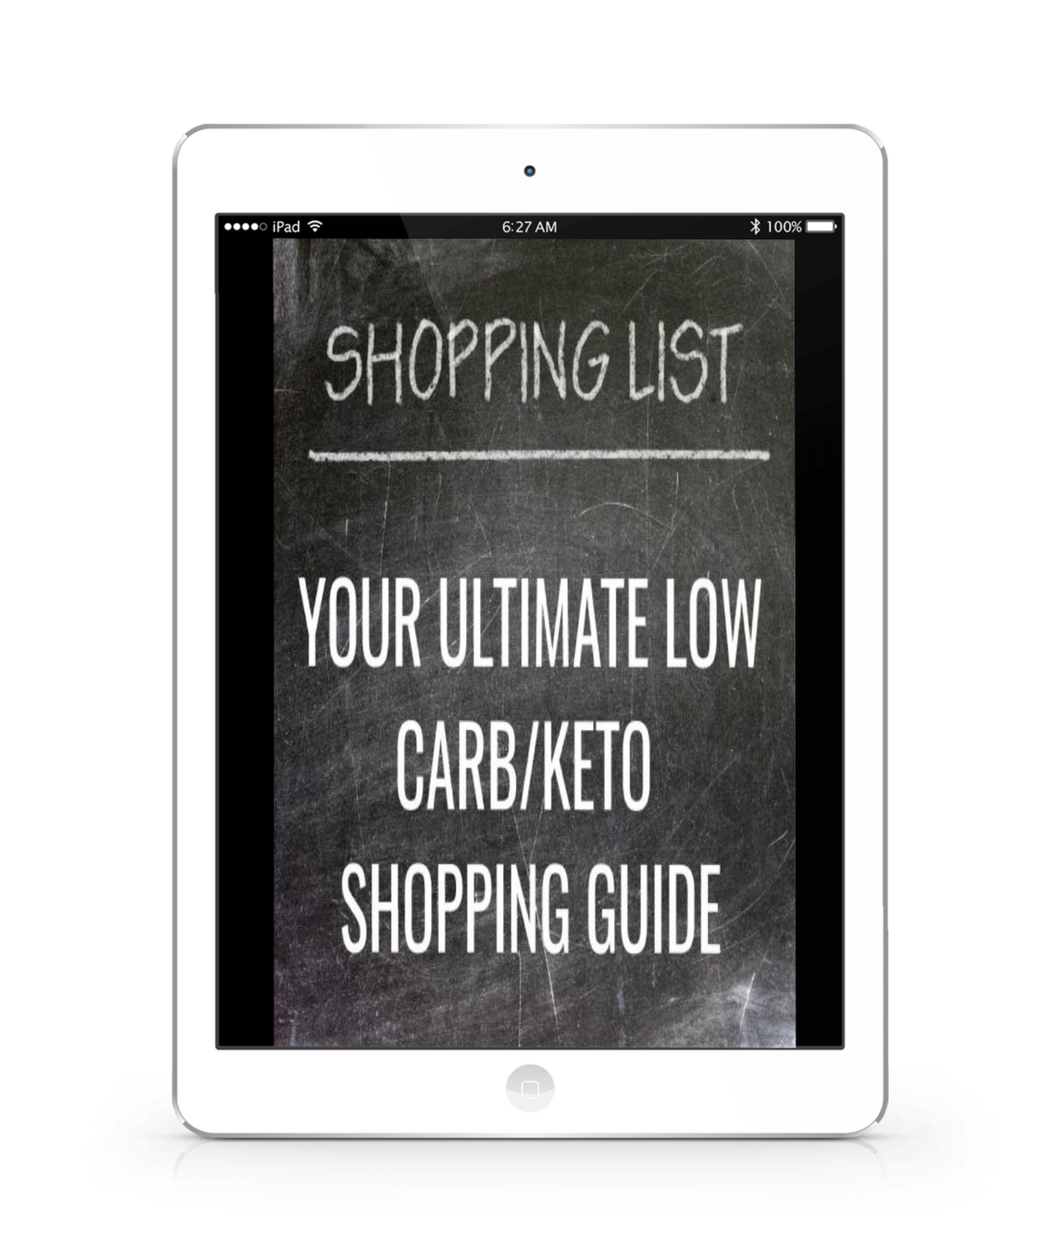 Ultimate Low Carb/Keto Shopping Guide